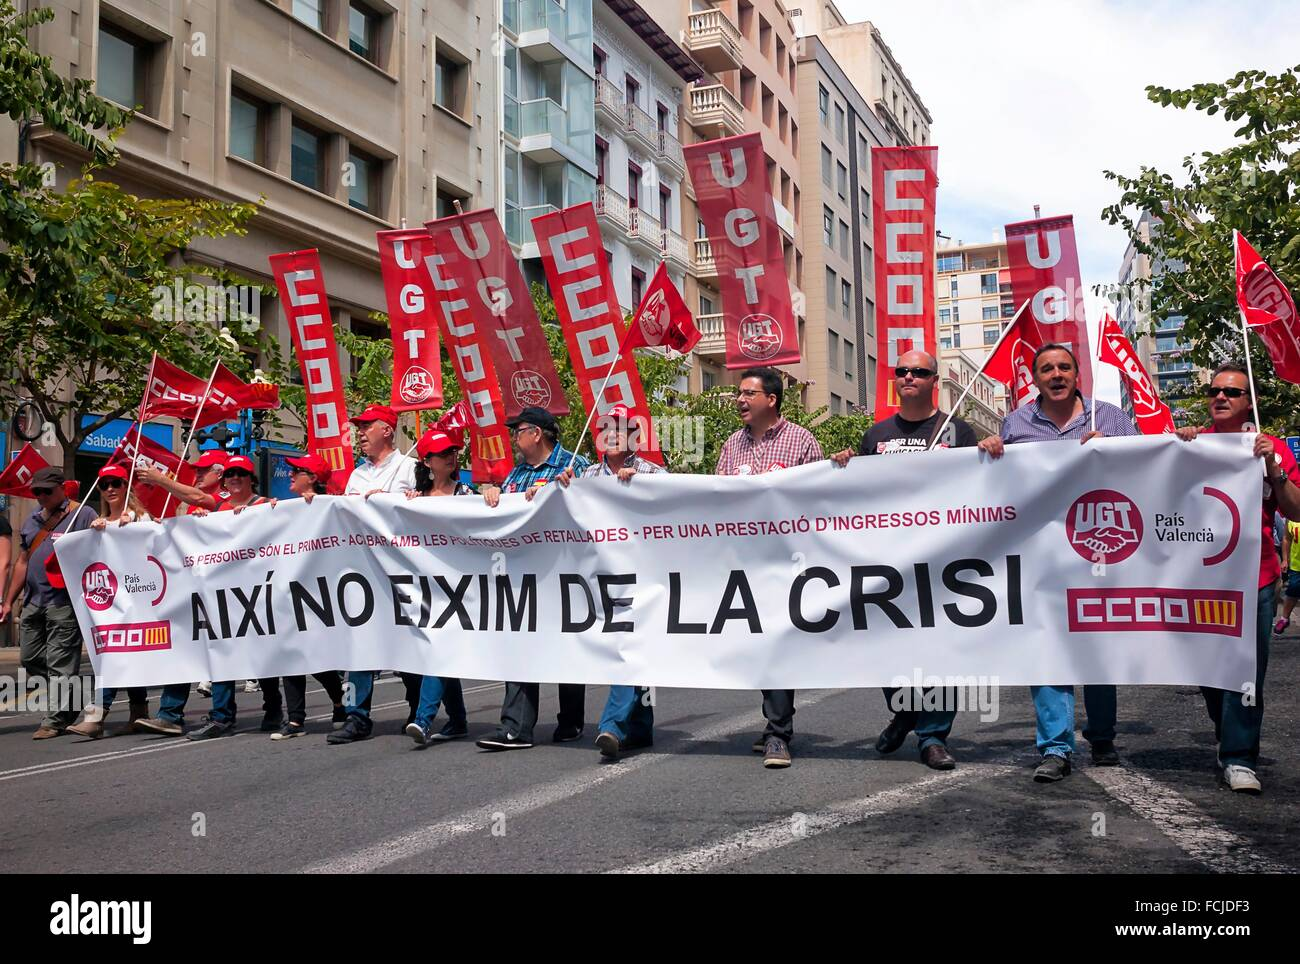 -Demonstration Against Cut´s Politic of Mariano Rajoy (Popular Party)- Alicante 1st of May (Spain). - Stock Image